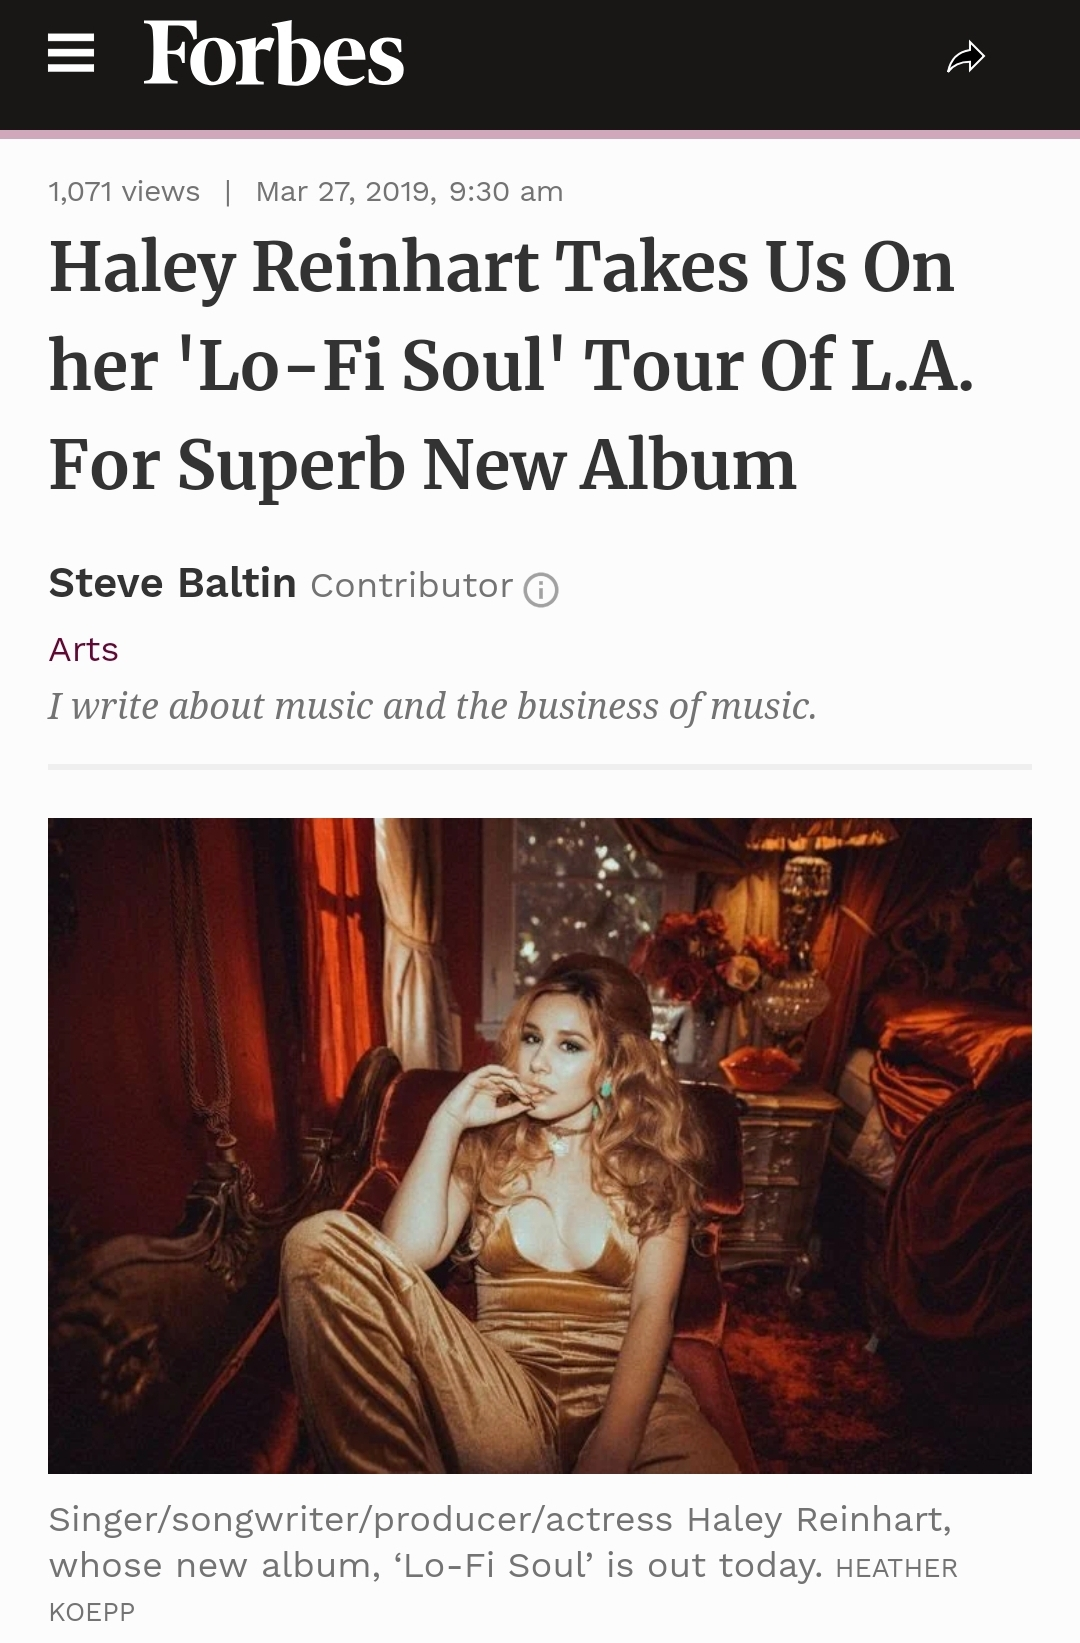 Forbes - https://www.forbes.com/sites/stevebaltin/2019/03/27/haley-reinhart-takes-us-on-her-lo-fi-soul-tour-of-l-a-for-superb-new-album/